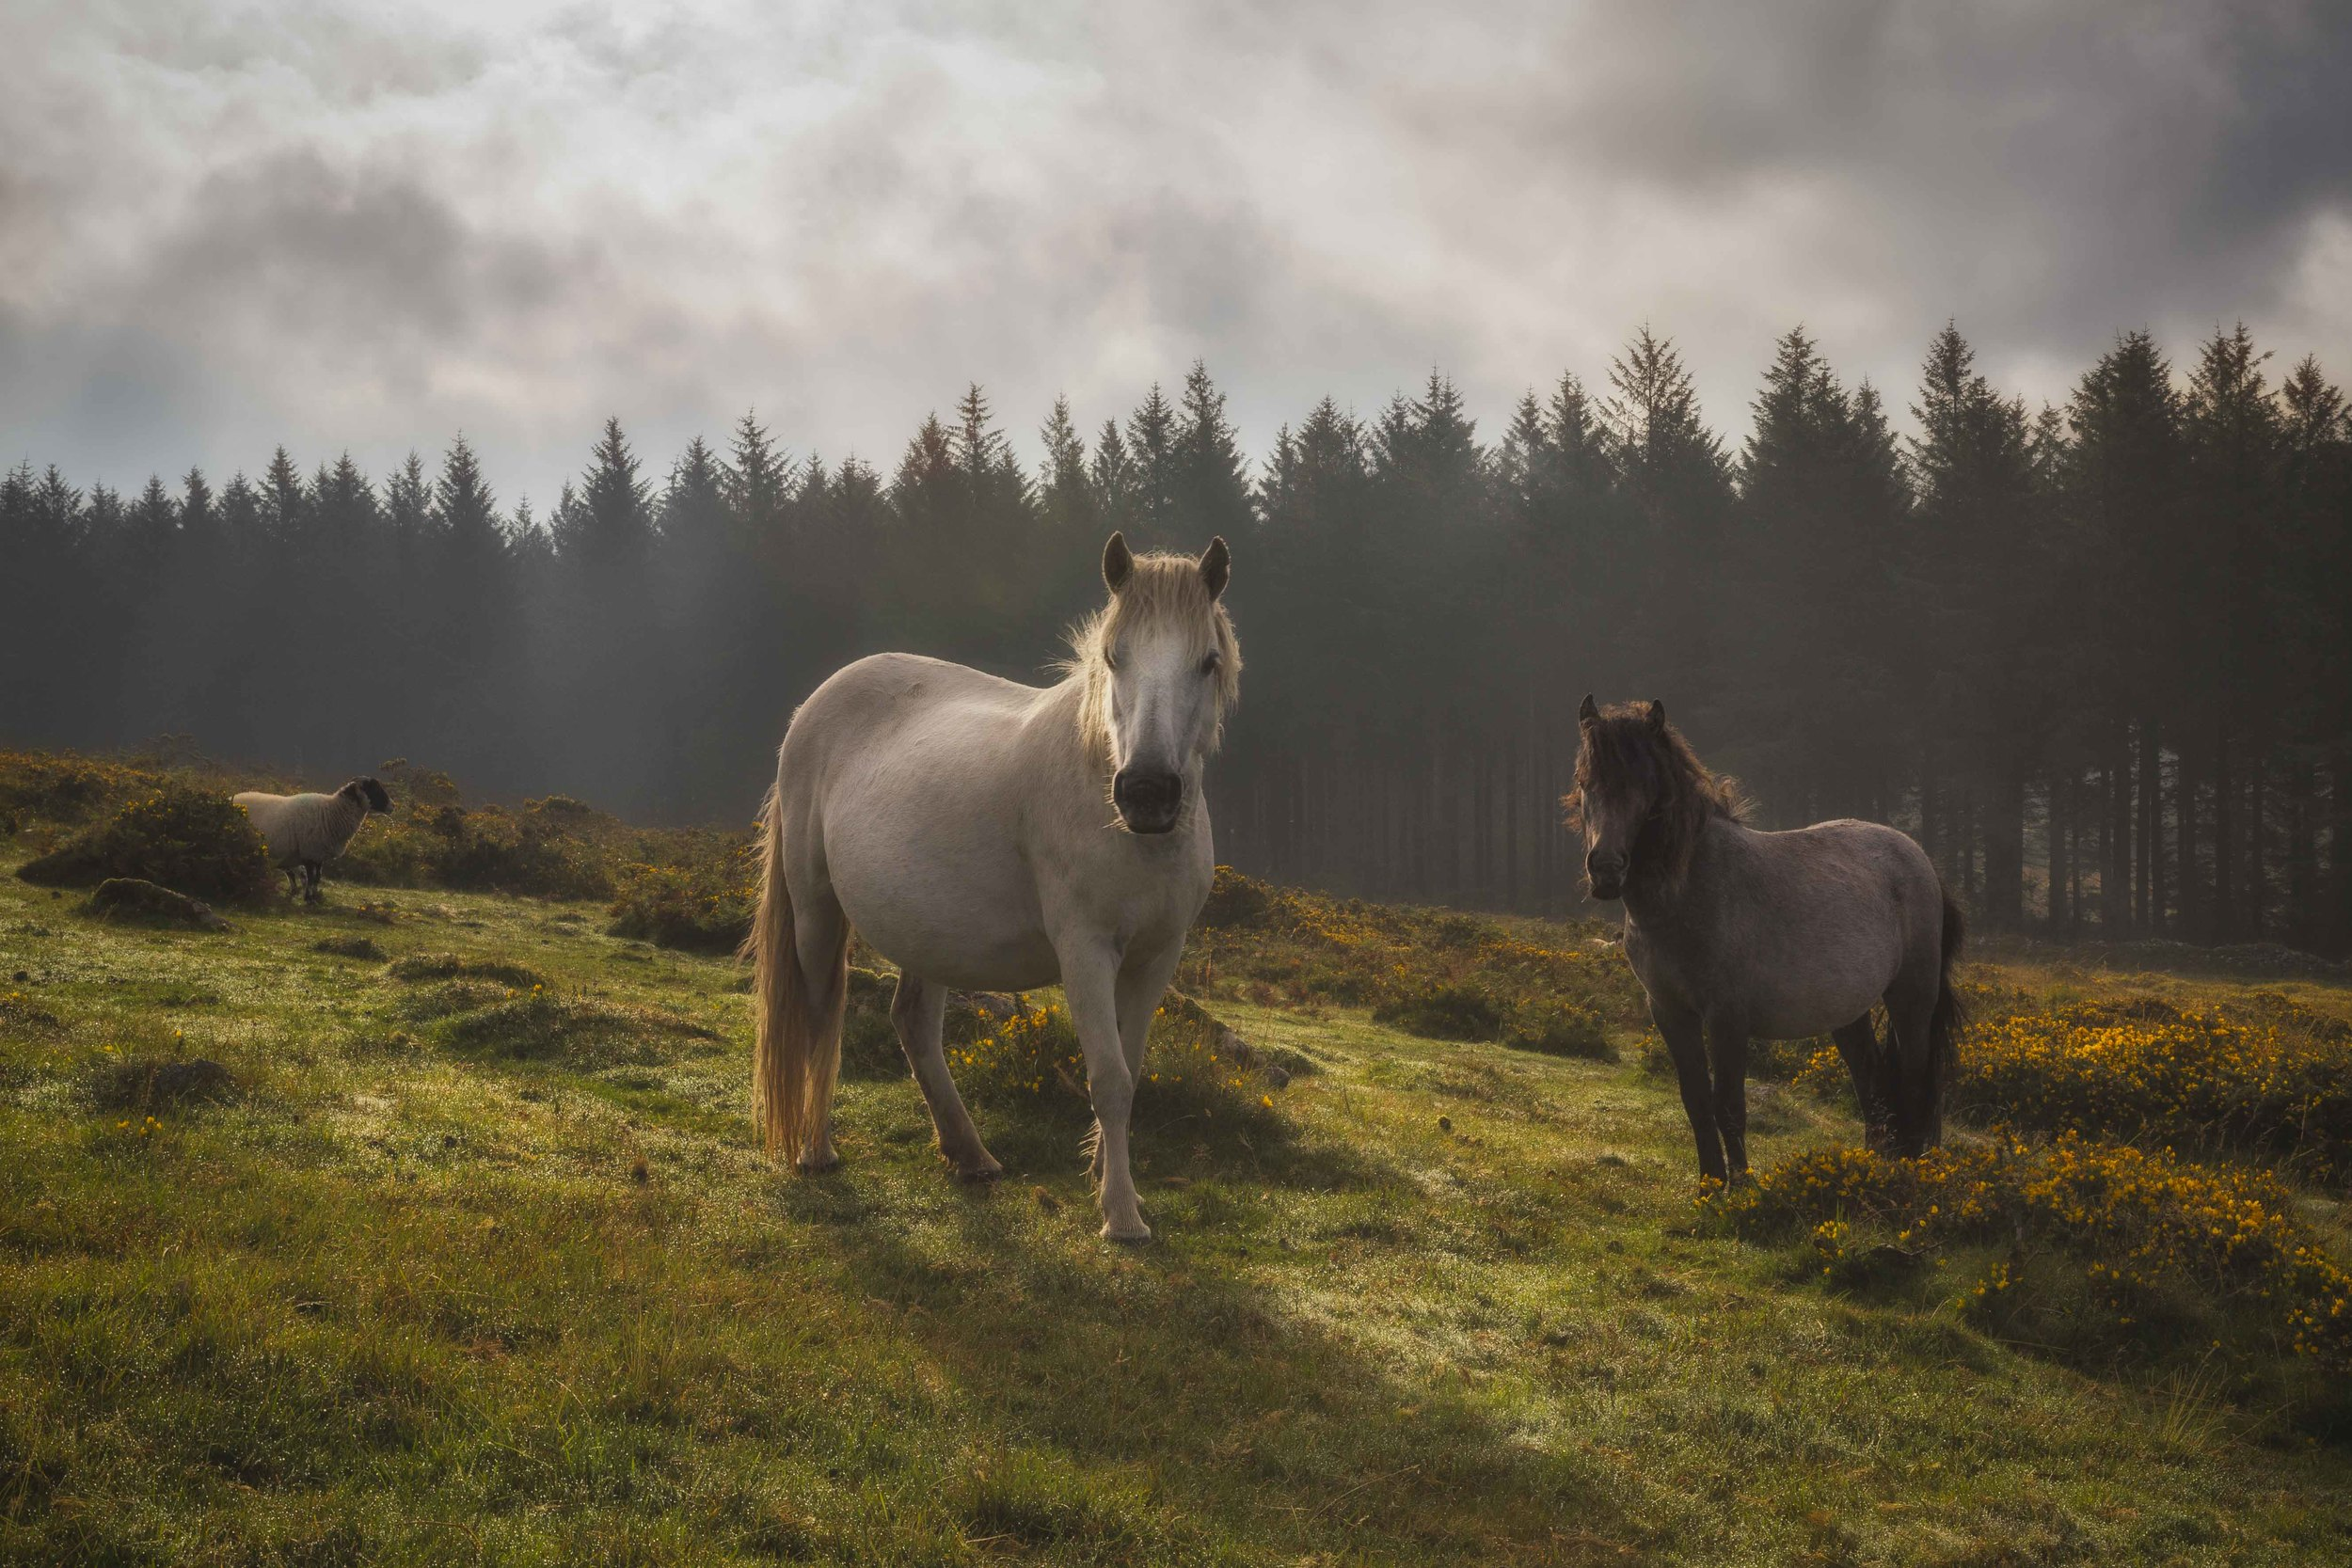 """The Watchers"" - Dartmoor, Devon, England. Canon 5D MK III + 24-70mm f/2.8 @ f/22. 1/80."